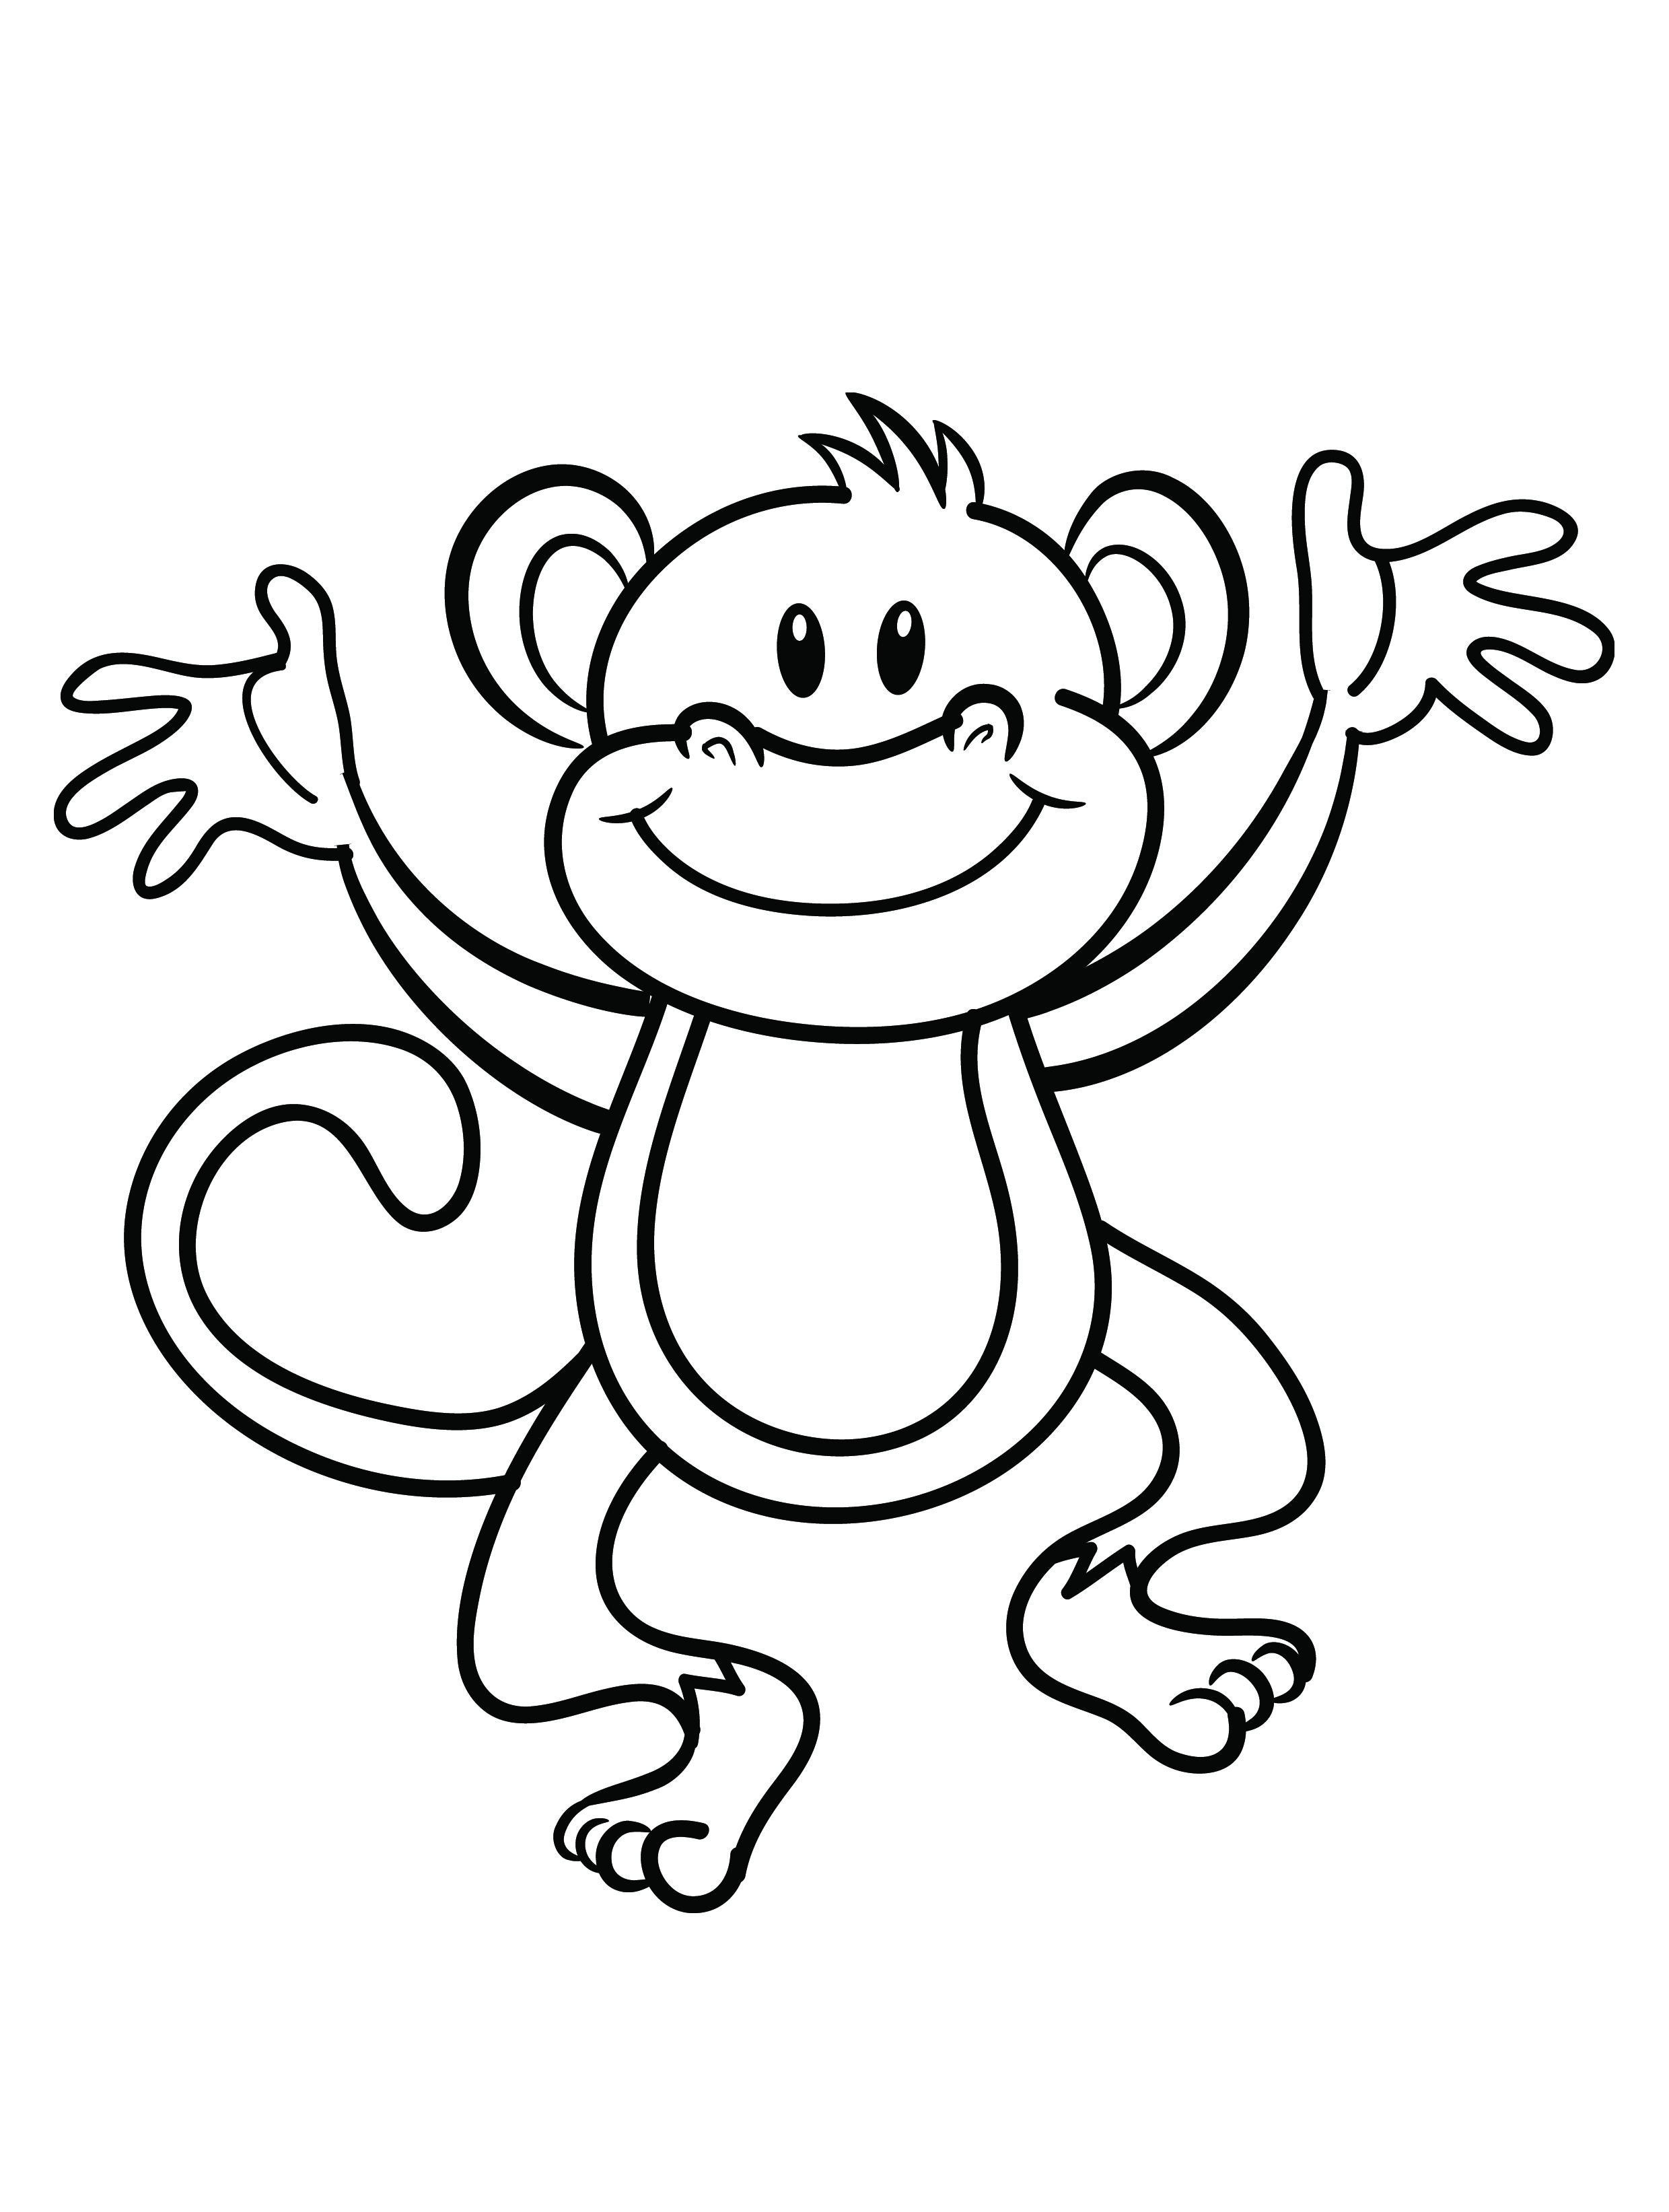 monkey coloring sheets - Monkey Coloring Page